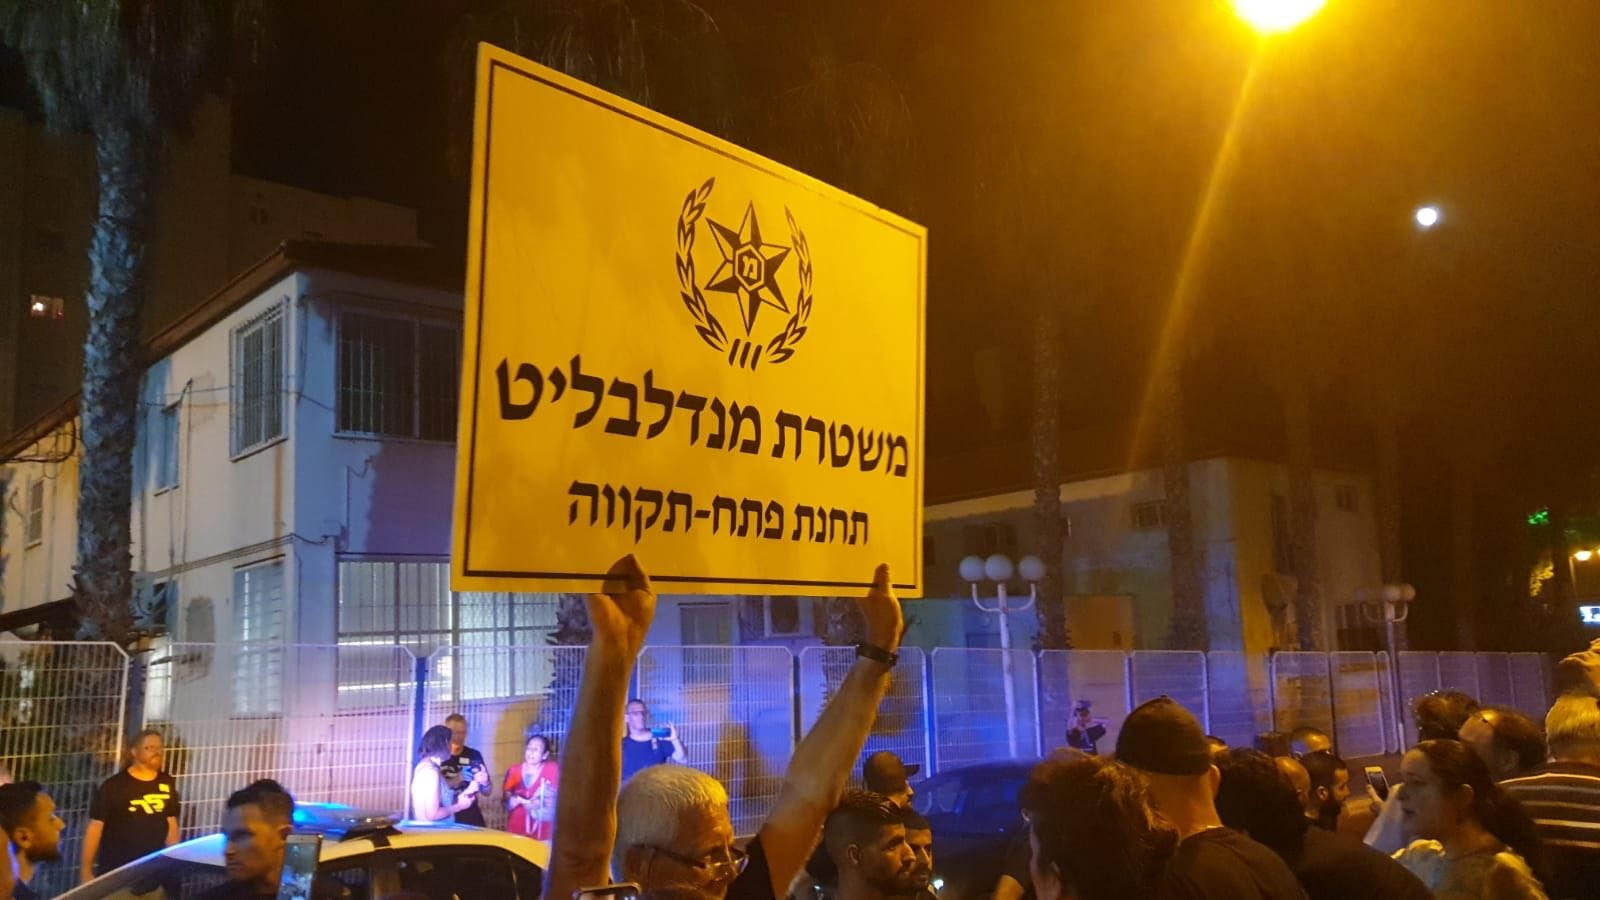 """Demonstrators in front of the Petah Tikva police station, on Friday night, August 16; the protestor's sign reads: """"Mendelblit's Police – Petah Tikva Station."""""""